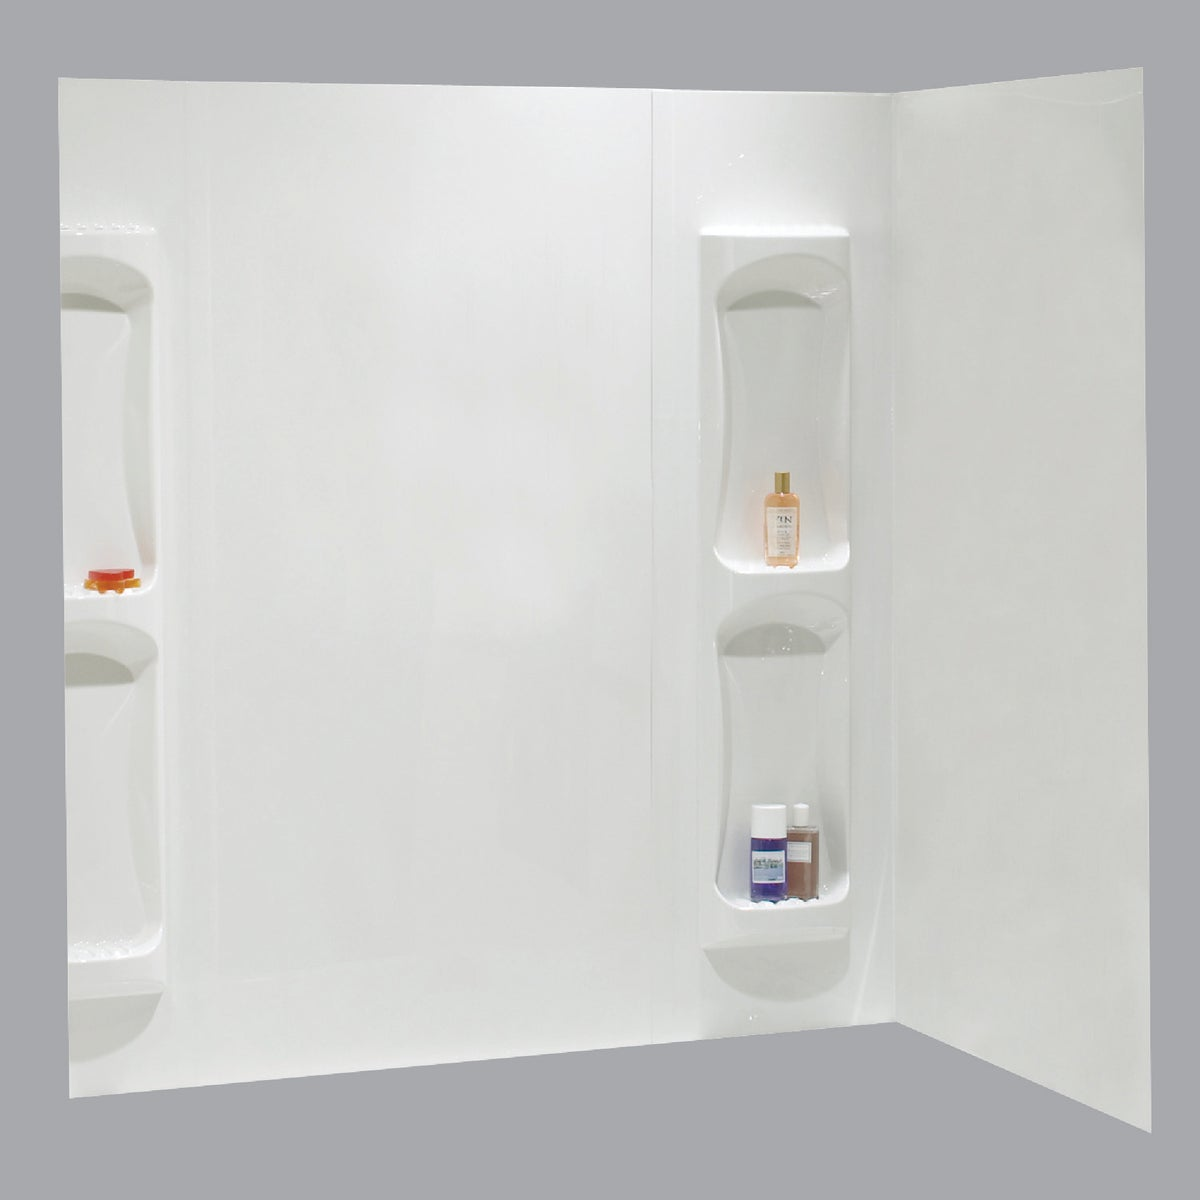 5PC WHITE TUB WALL KIT - 102573-129 by Maax Bath